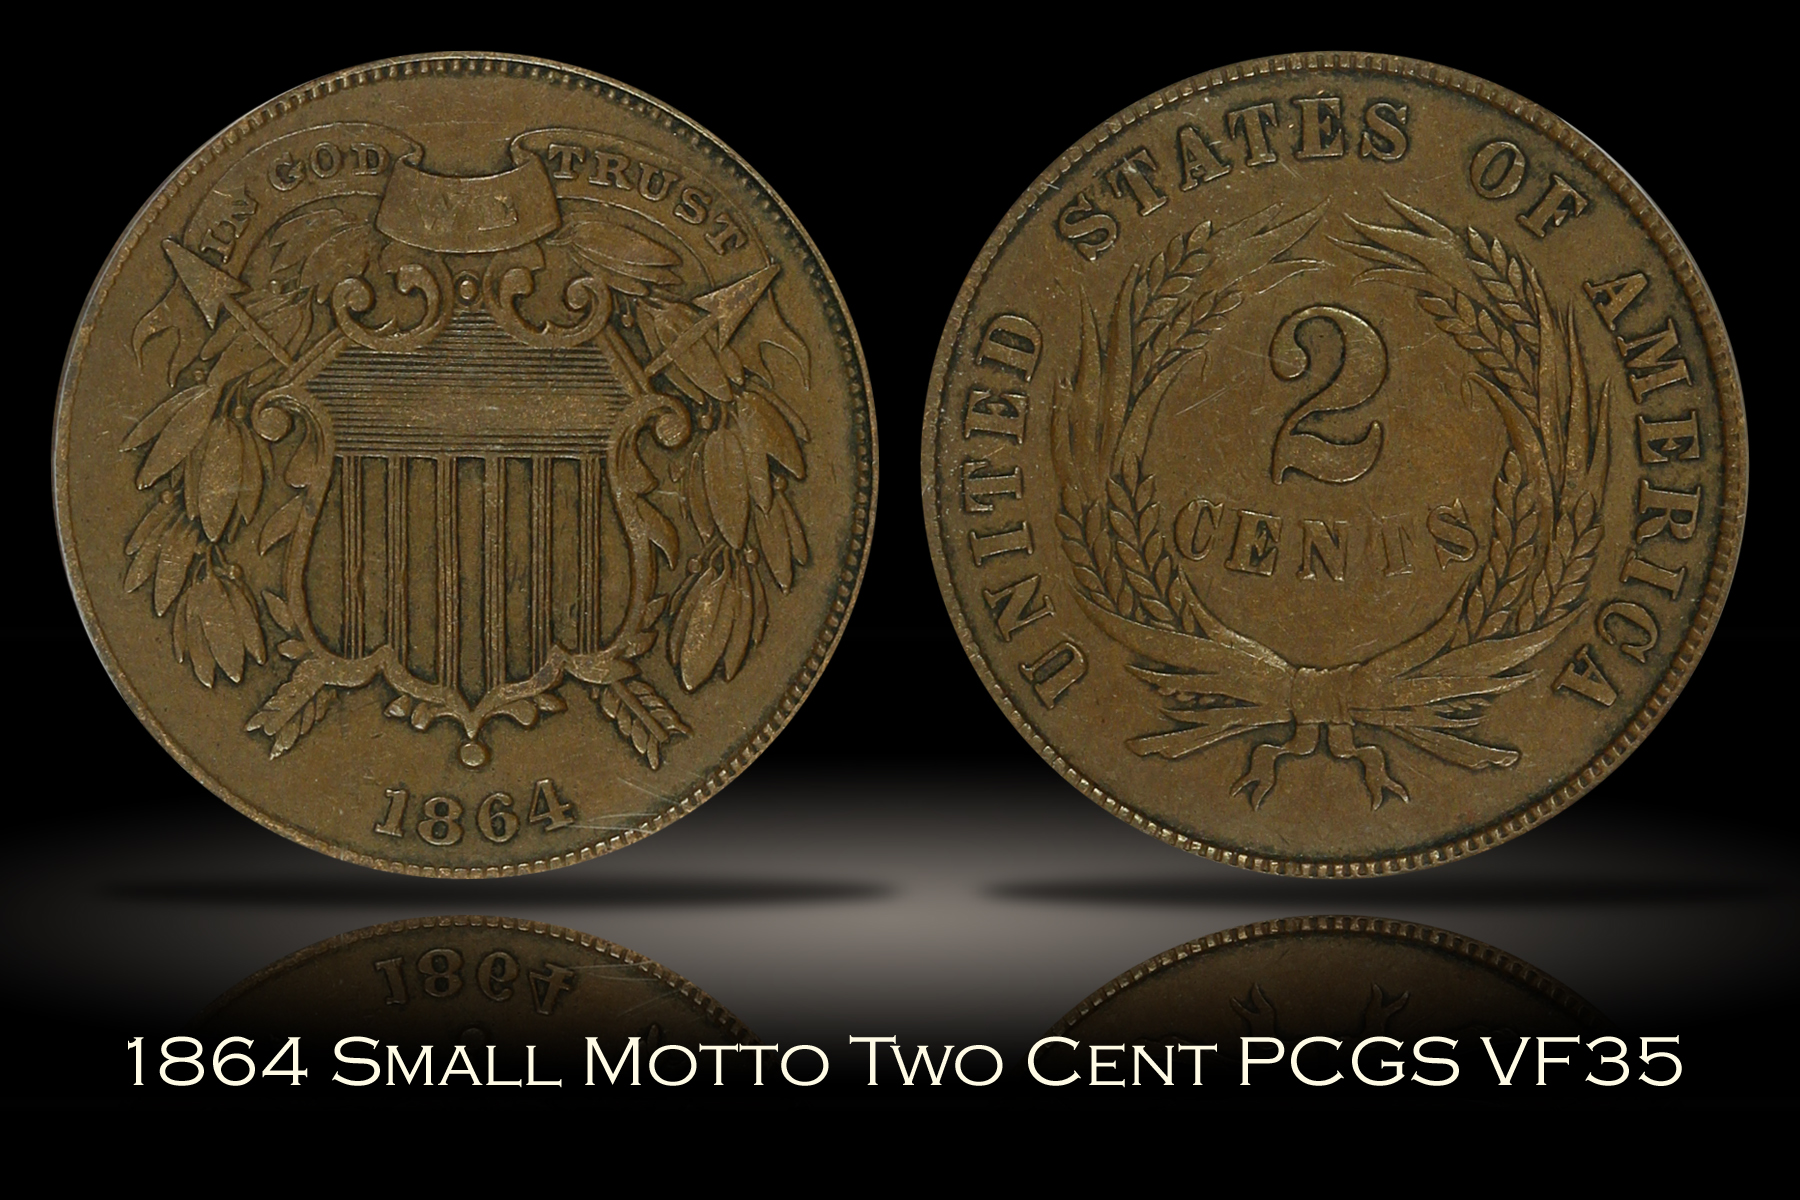 1864 Small Motto Two Cent PCGS VF35